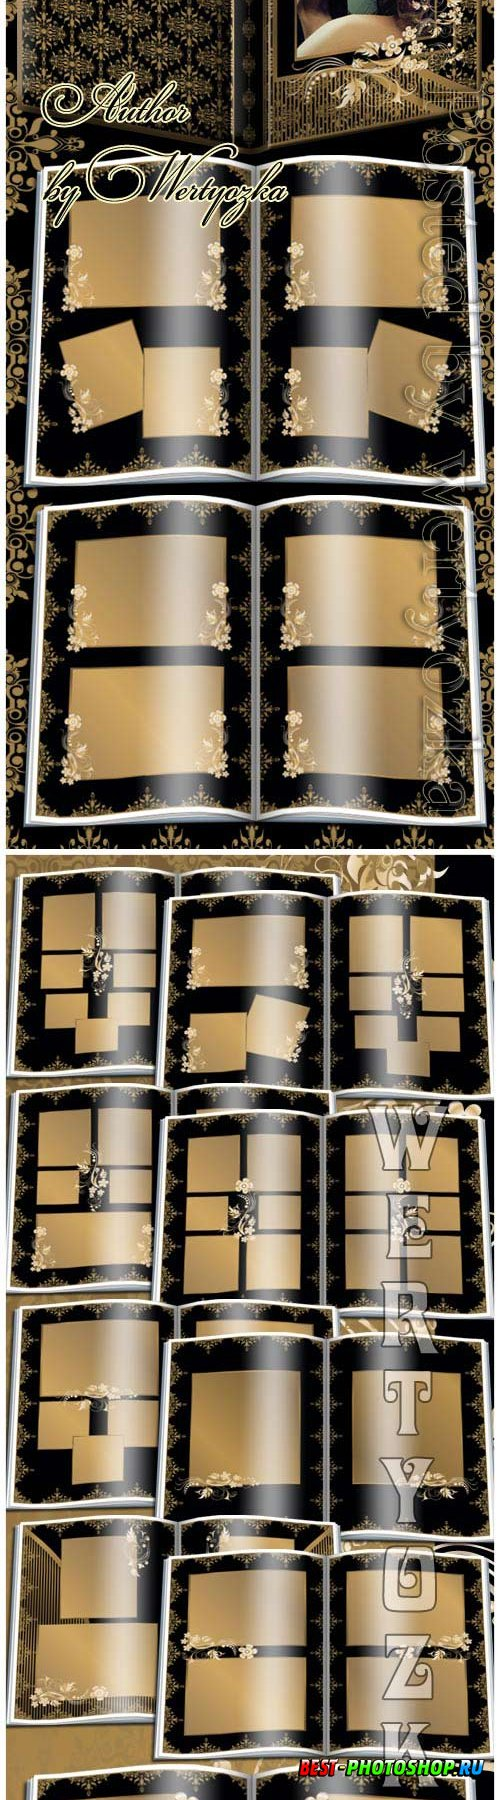 Beautiful photo album with golden ornaments